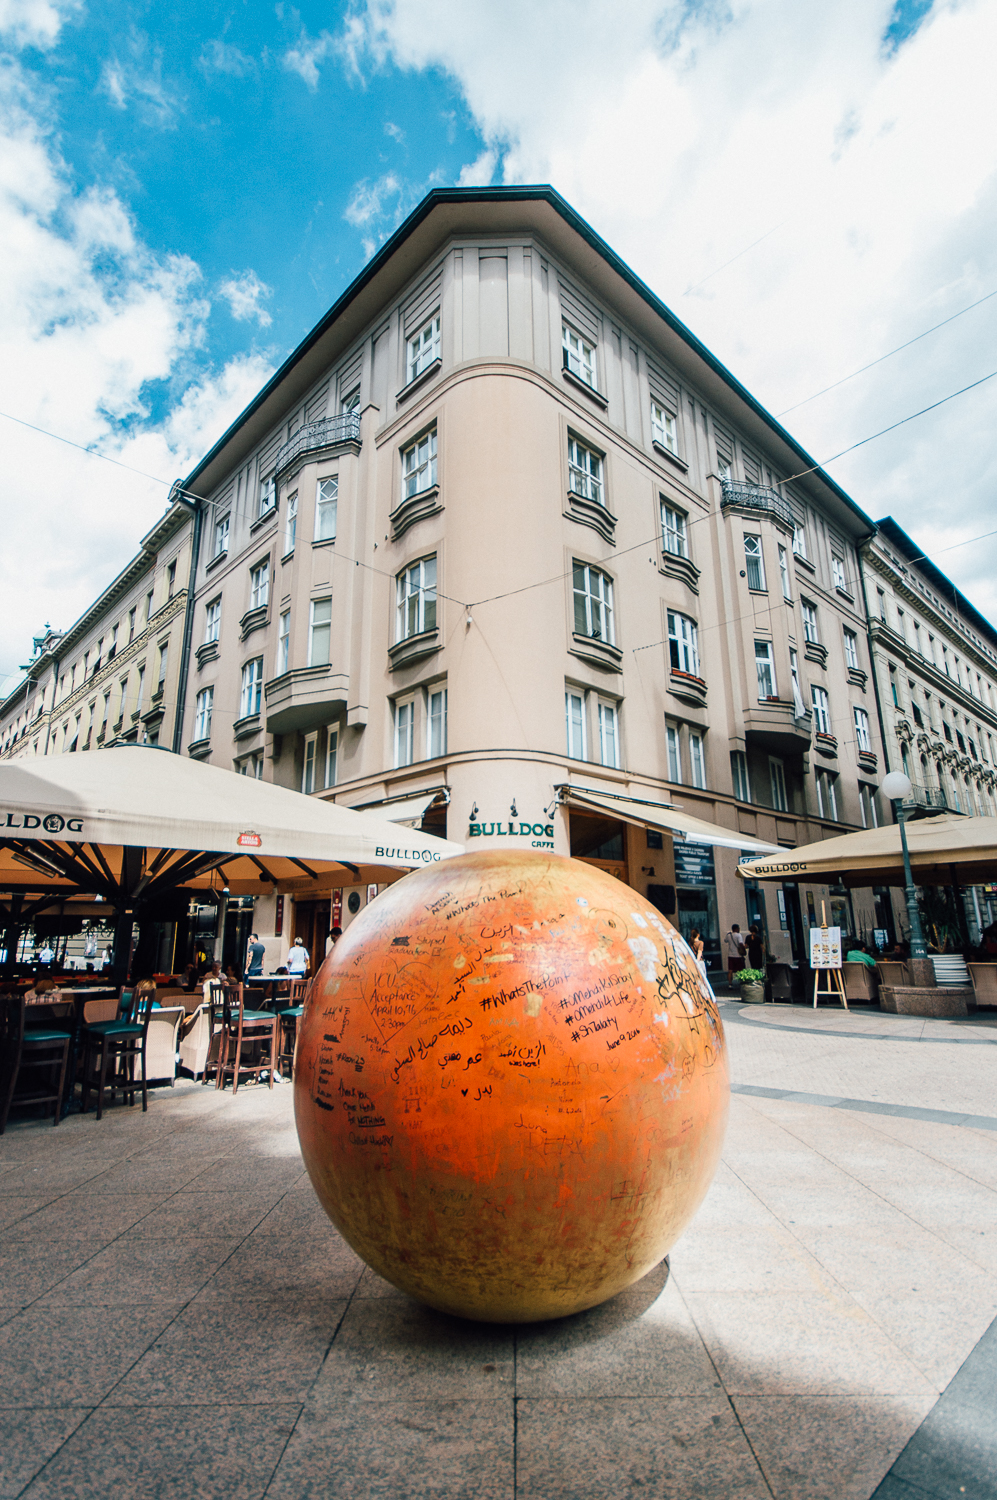 Zagreb has 9 models of planets installed throughout the city and they are all proportional in size. The sun is the easiest to find as it is not only large but also on a busy street. The other planets are difficult to find and the first people to find all of them were Zagreb Physics students.